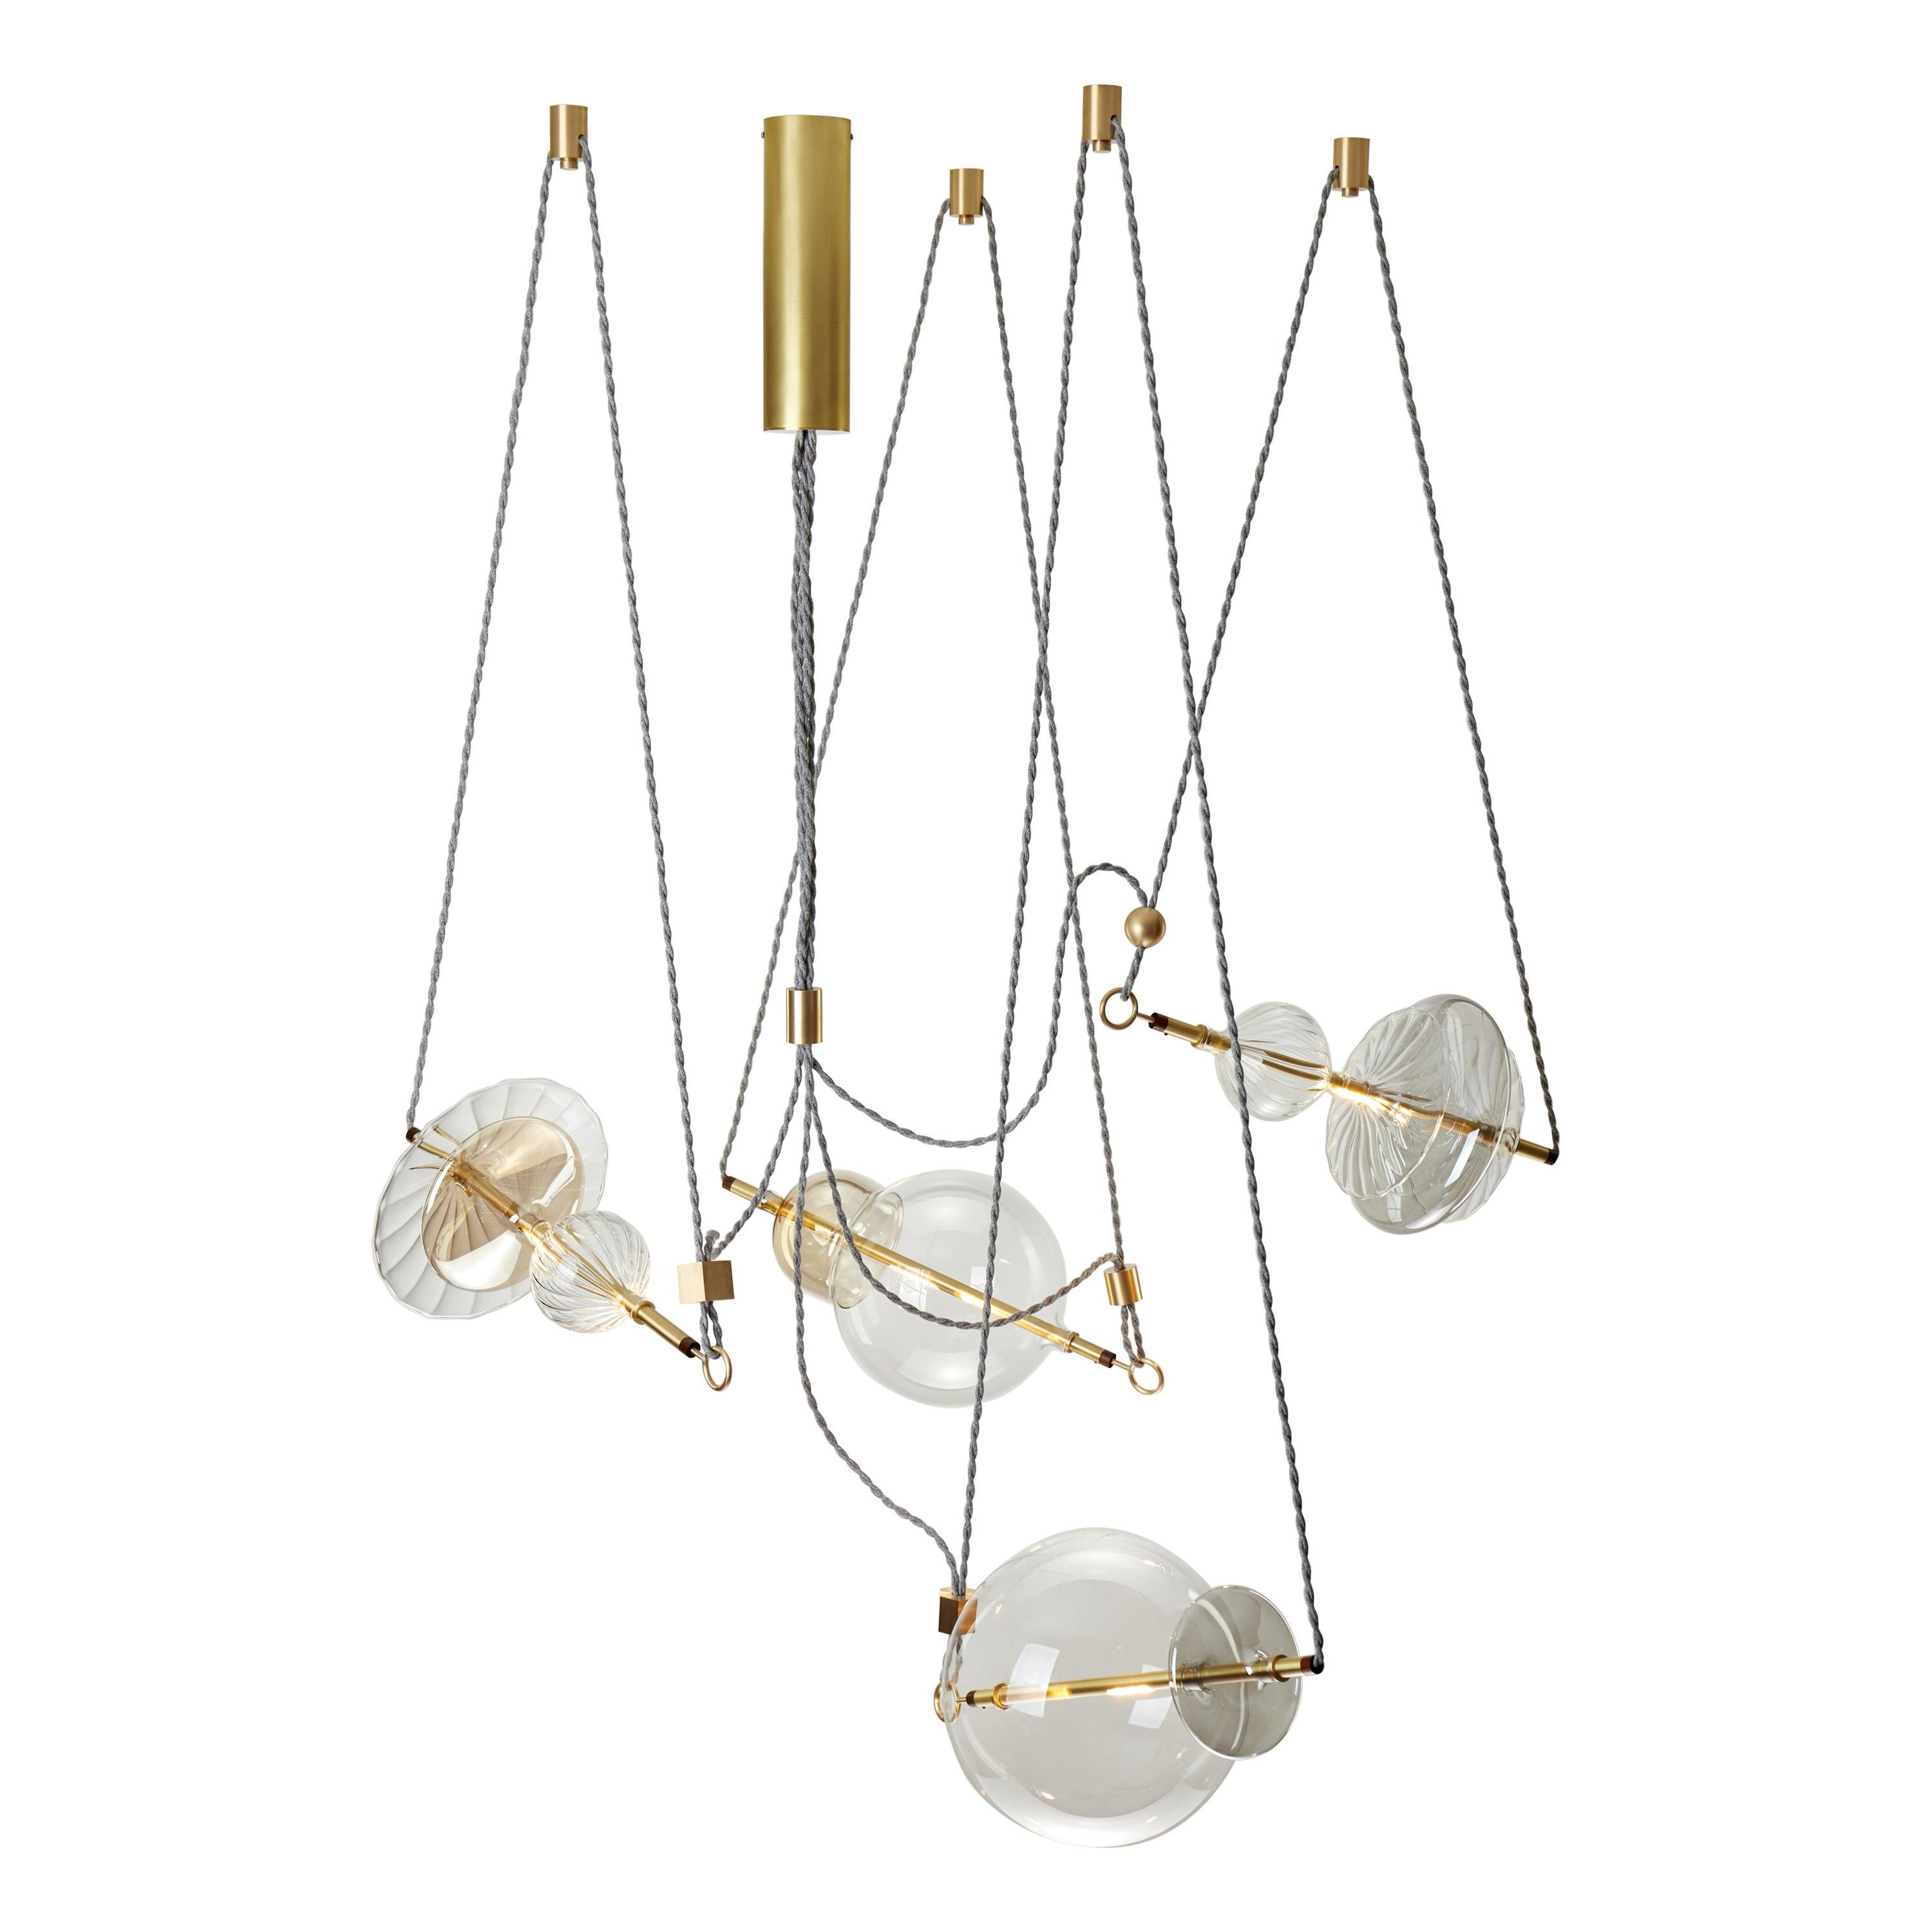 Antique And Vintage Chandeliers Pendants 37 141 For